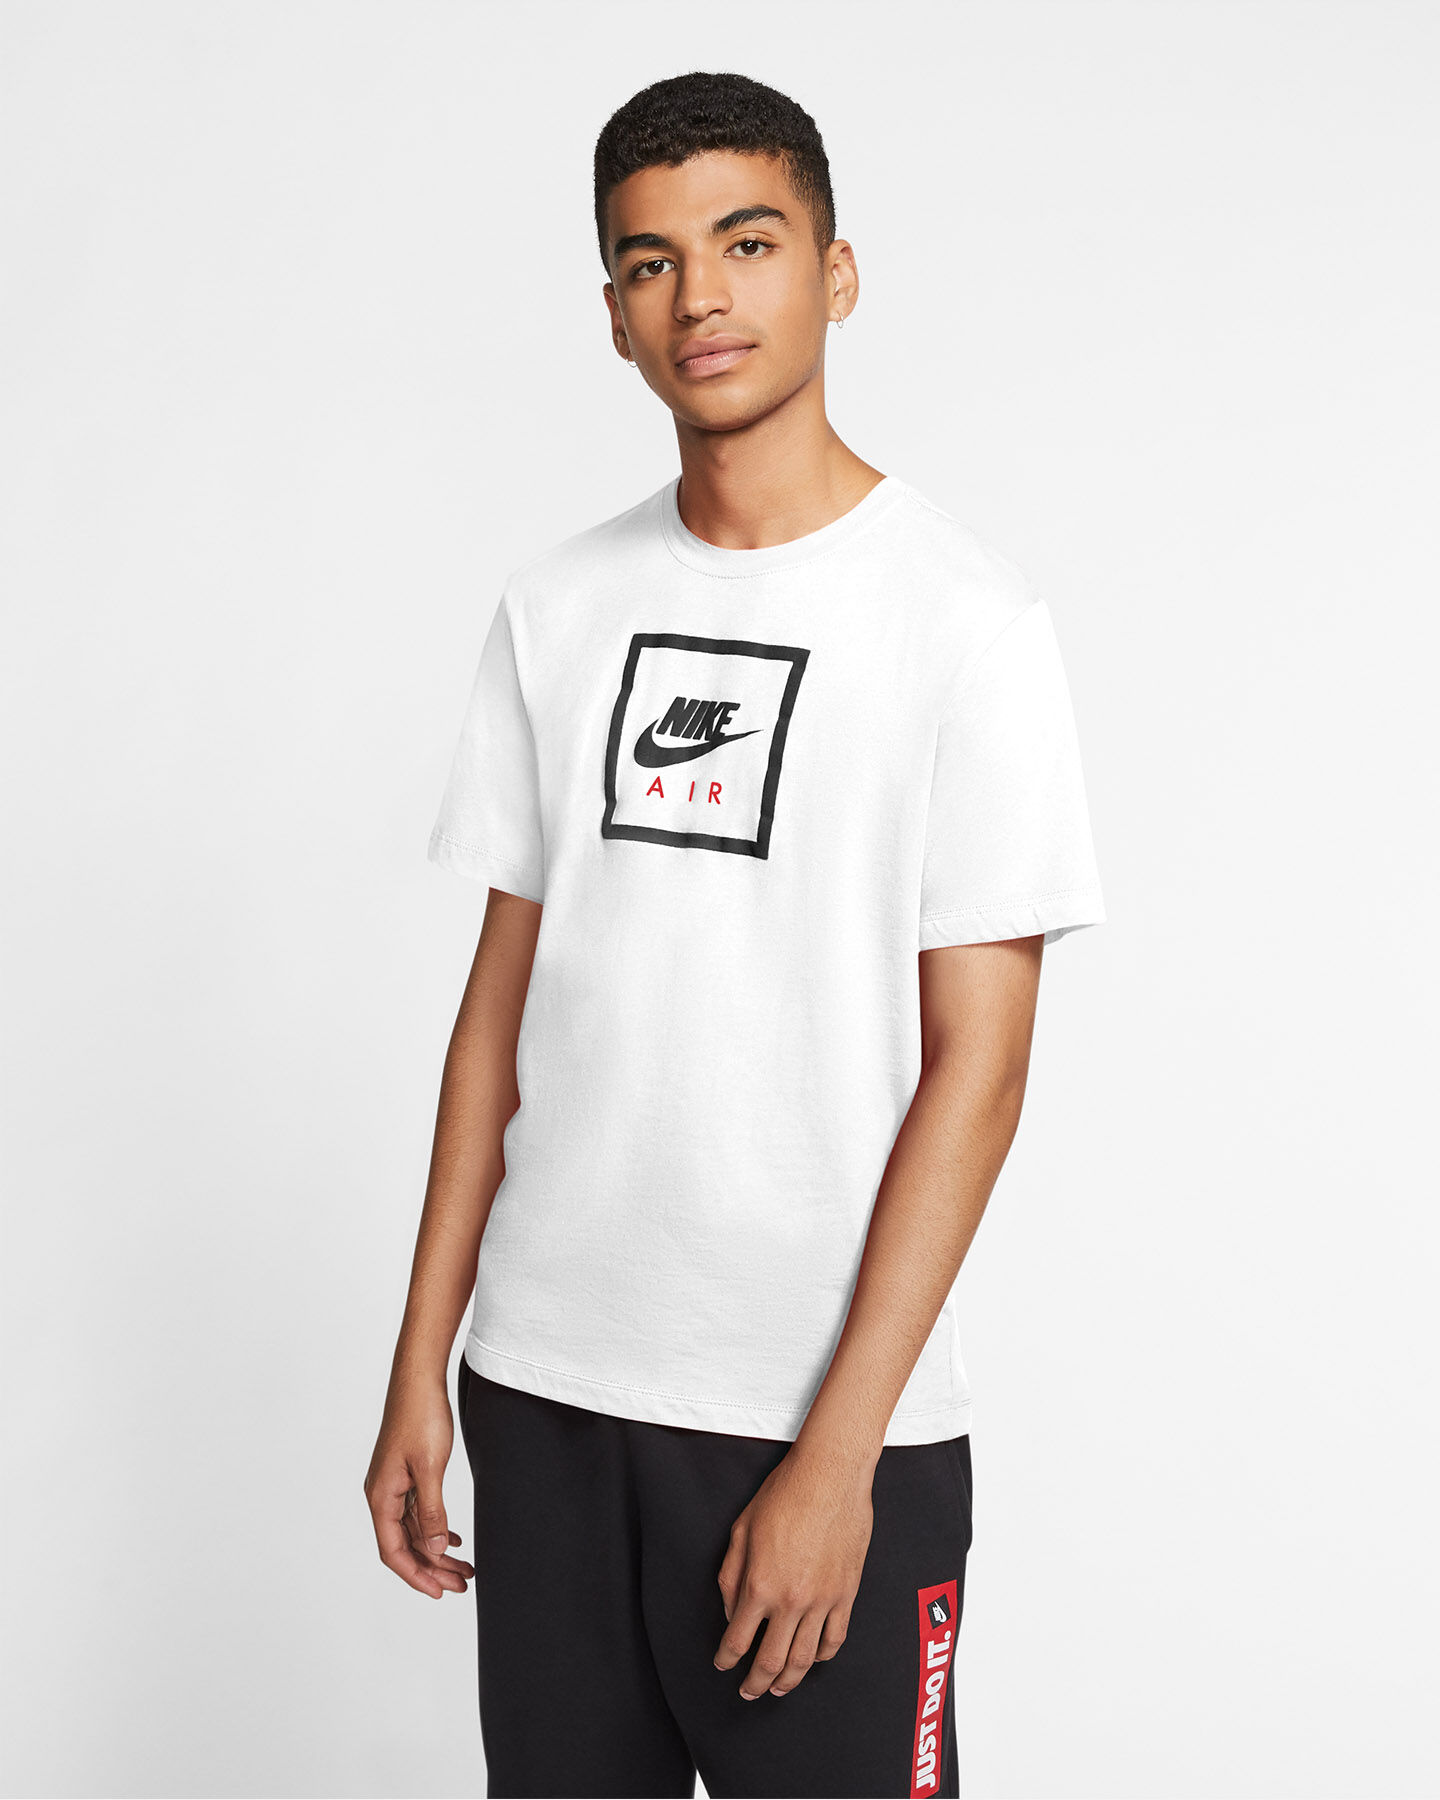 T-Shirt NIKE AIR M S5248560 scatto 2